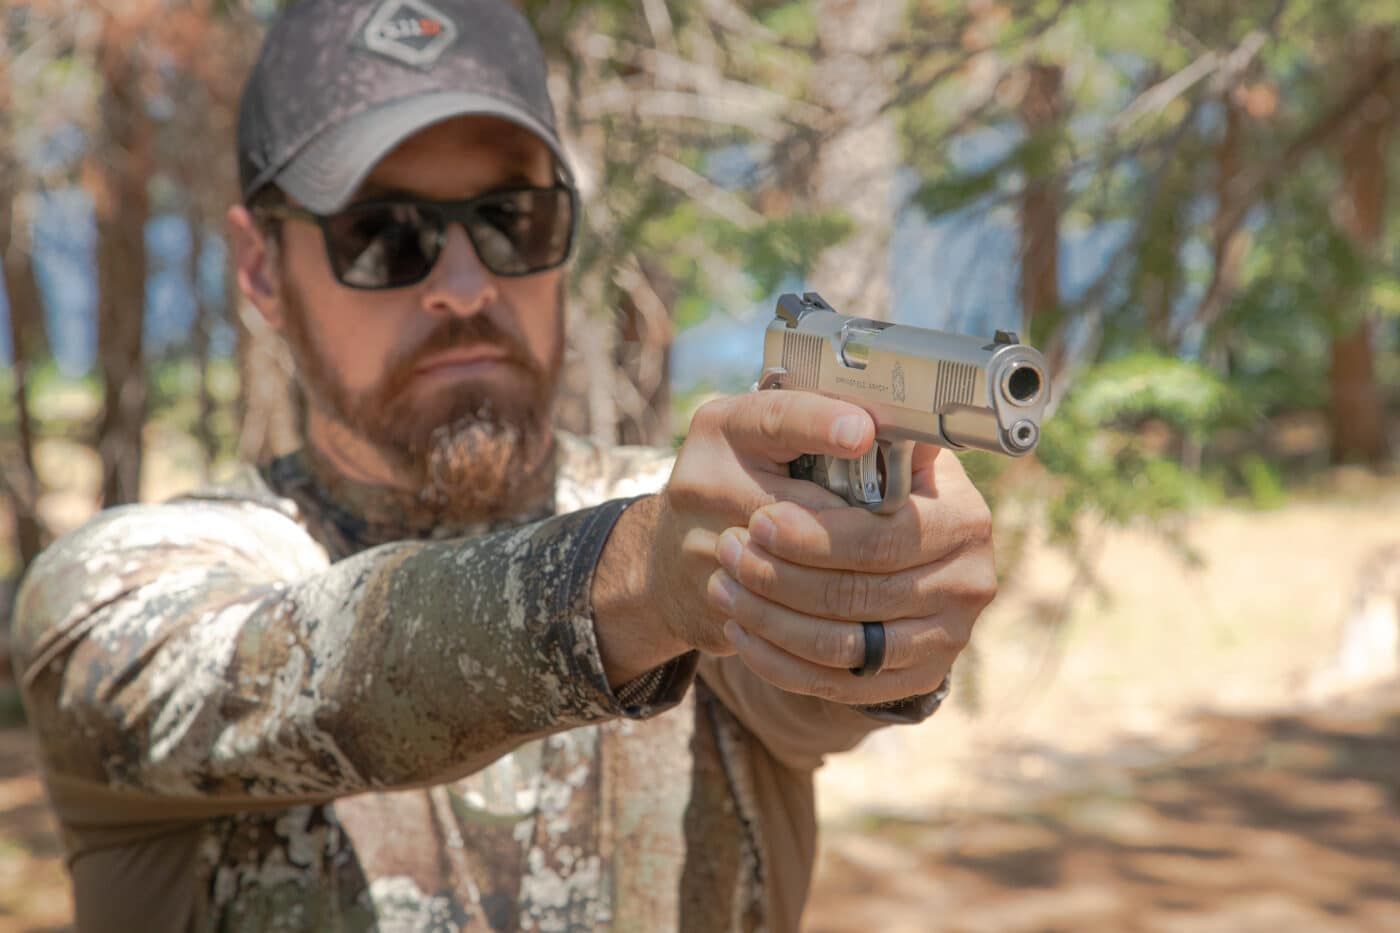 Man shooting the stainless steel Springfield TRP